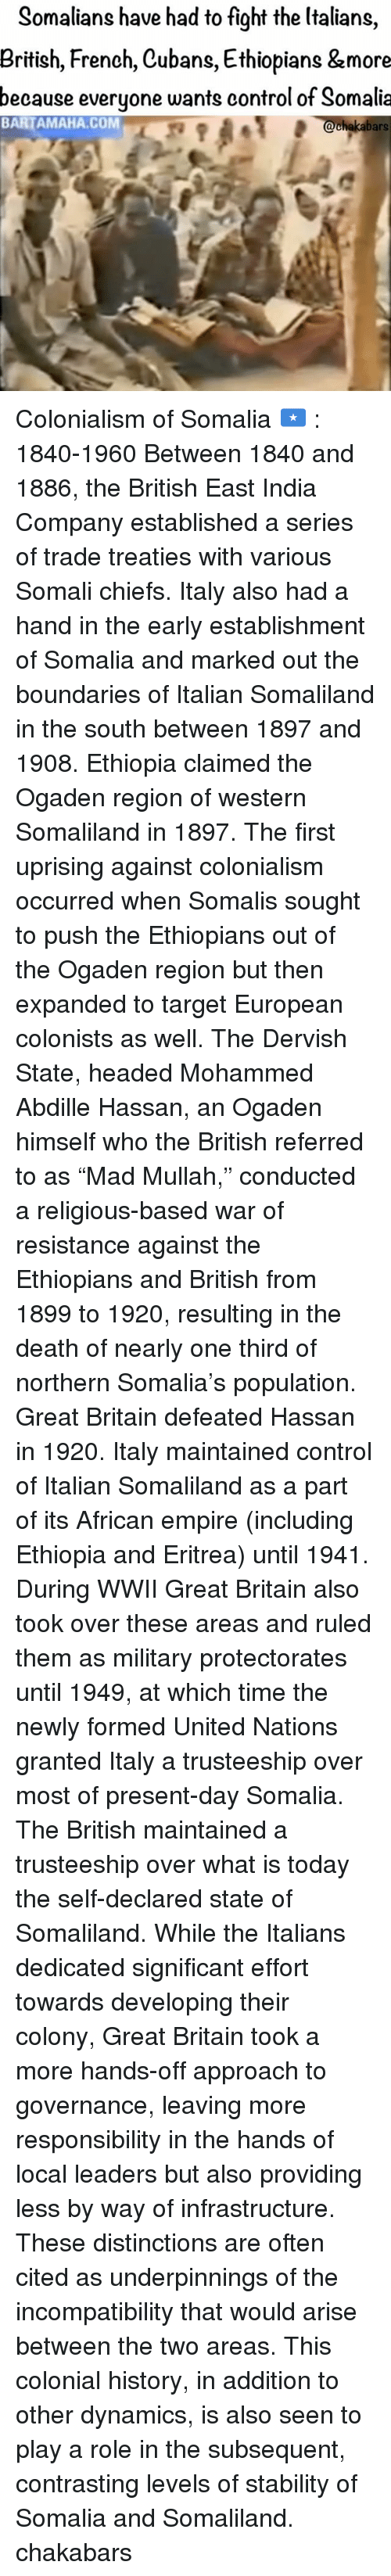 "Empire, Ethiopians, and Memes: Somalians have had to fight the Italians  British, French, Cubans, Ethiopians &more  because everyone wants control of Somalia  BARTAMAHA, COM  chakabars Colonialism of Somalia 🇸🇴 : 1840-1960 Between 1840 and 1886, the British East India Company established a series of trade treaties with various Somali chiefs. Italy also had a hand in the early establishment of Somalia and marked out the boundaries of Italian Somaliland in the south between 1897 and 1908. Ethiopia claimed the Ogaden region of western Somaliland in 1897. The first uprising against colonialism occurred when Somalis sought to push the Ethiopians out of the Ogaden region but then expanded to target European colonists as well. The Dervish State, headed Mohammed Abdille Hassan, an Ogaden himself who the British referred to as ""Mad Mullah,"" conducted a religious-based war of resistance against the Ethiopians and British from 1899 to 1920, resulting in the death of nearly one third of northern Somalia's population. Great Britain defeated Hassan in 1920. Italy maintained control of Italian Somaliland as a part of its African empire (including Ethiopia and Eritrea) until 1941. During WWII Great Britain also took over these areas and ruled them as military protectorates until 1949, at which time the newly formed United Nations granted Italy a trusteeship over most of present-day Somalia. The British maintained a trusteeship over what is today the self-declared state of Somaliland. While the Italians dedicated significant effort towards developing their colony, Great Britain took a more hands-off approach to governance, leaving more responsibility in the hands of local leaders but also providing less by way of infrastructure. These distinctions are often cited as underpinnings of the incompatibility that would arise between the two areas. This colonial history, in addition to other dynamics, is also seen to play a role in the subsequent, contrasting levels of stability of Somalia and Somaliland. chakabars"